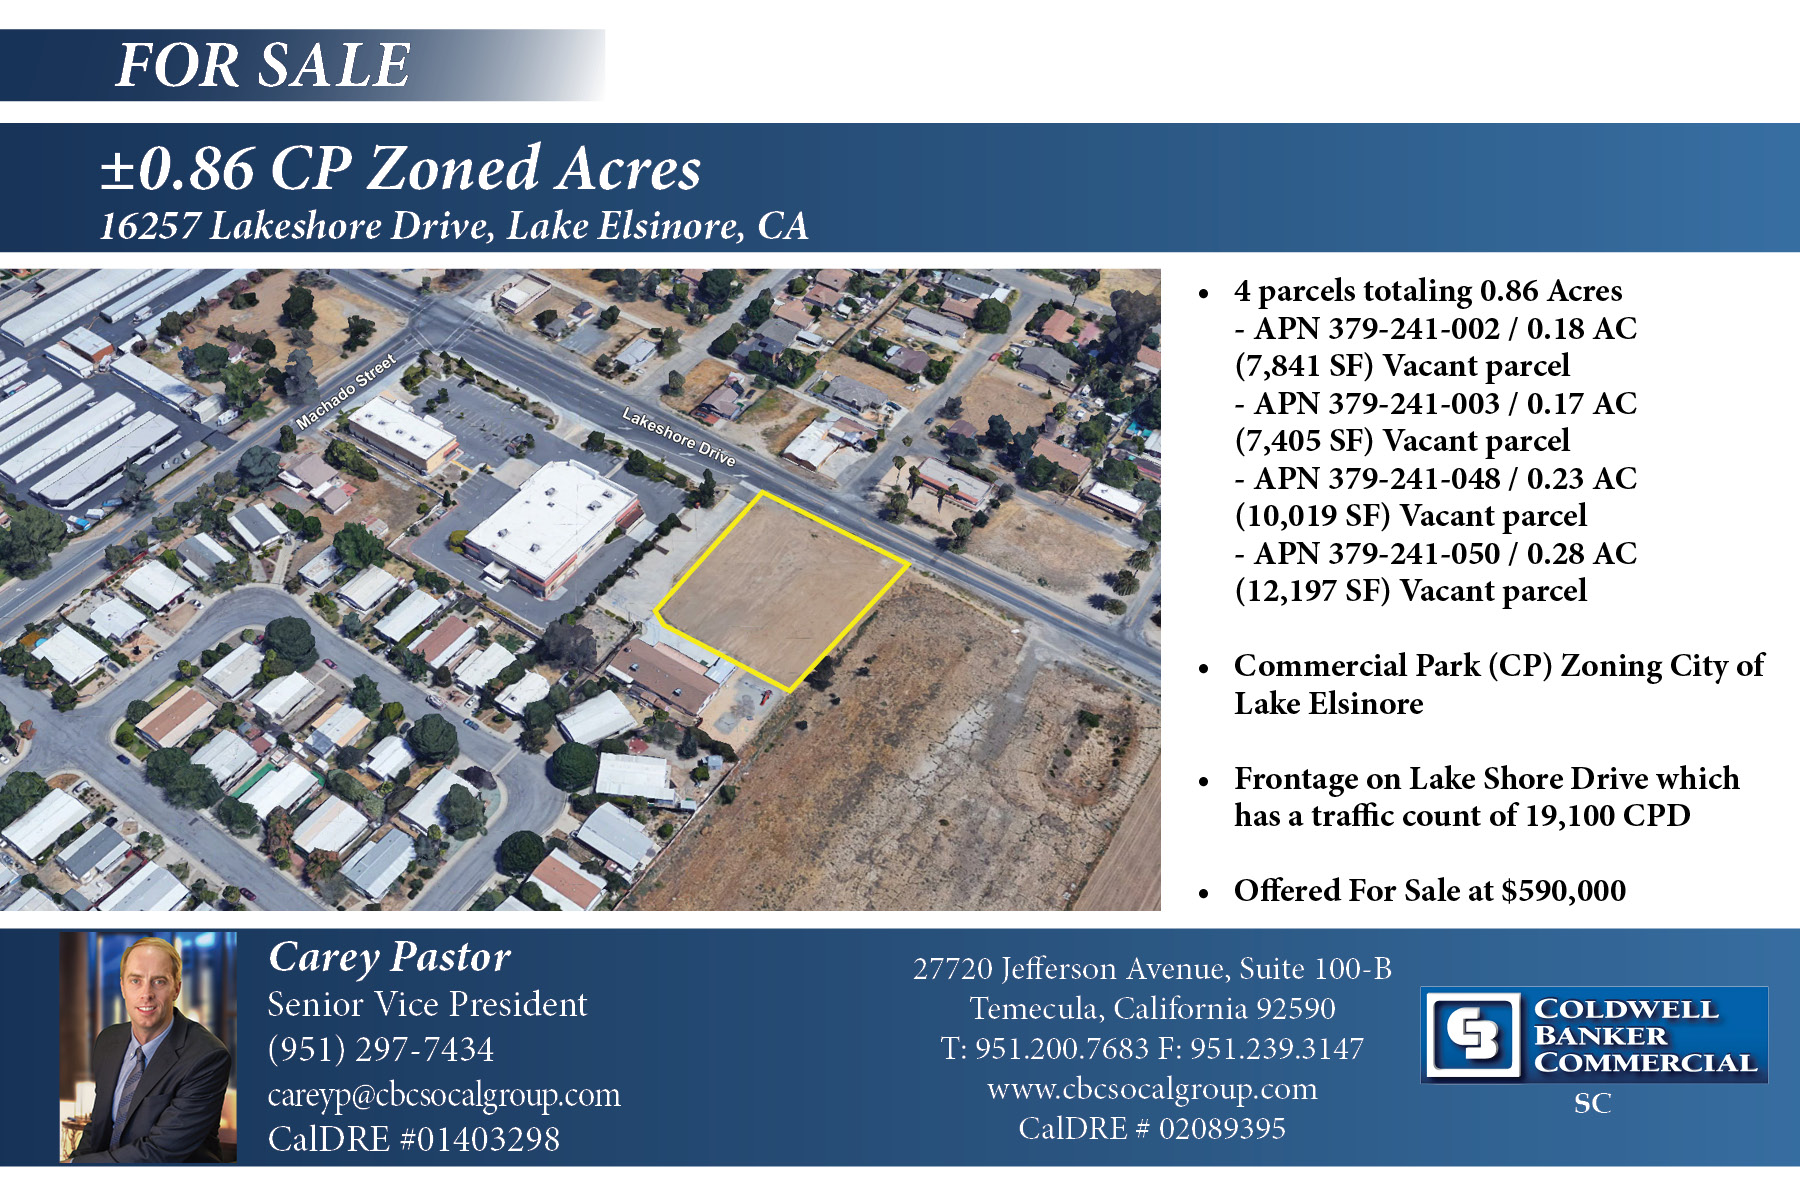 FOR SALE! ±0.86 Acre of CP zoned vacant land in Lake Elsinore